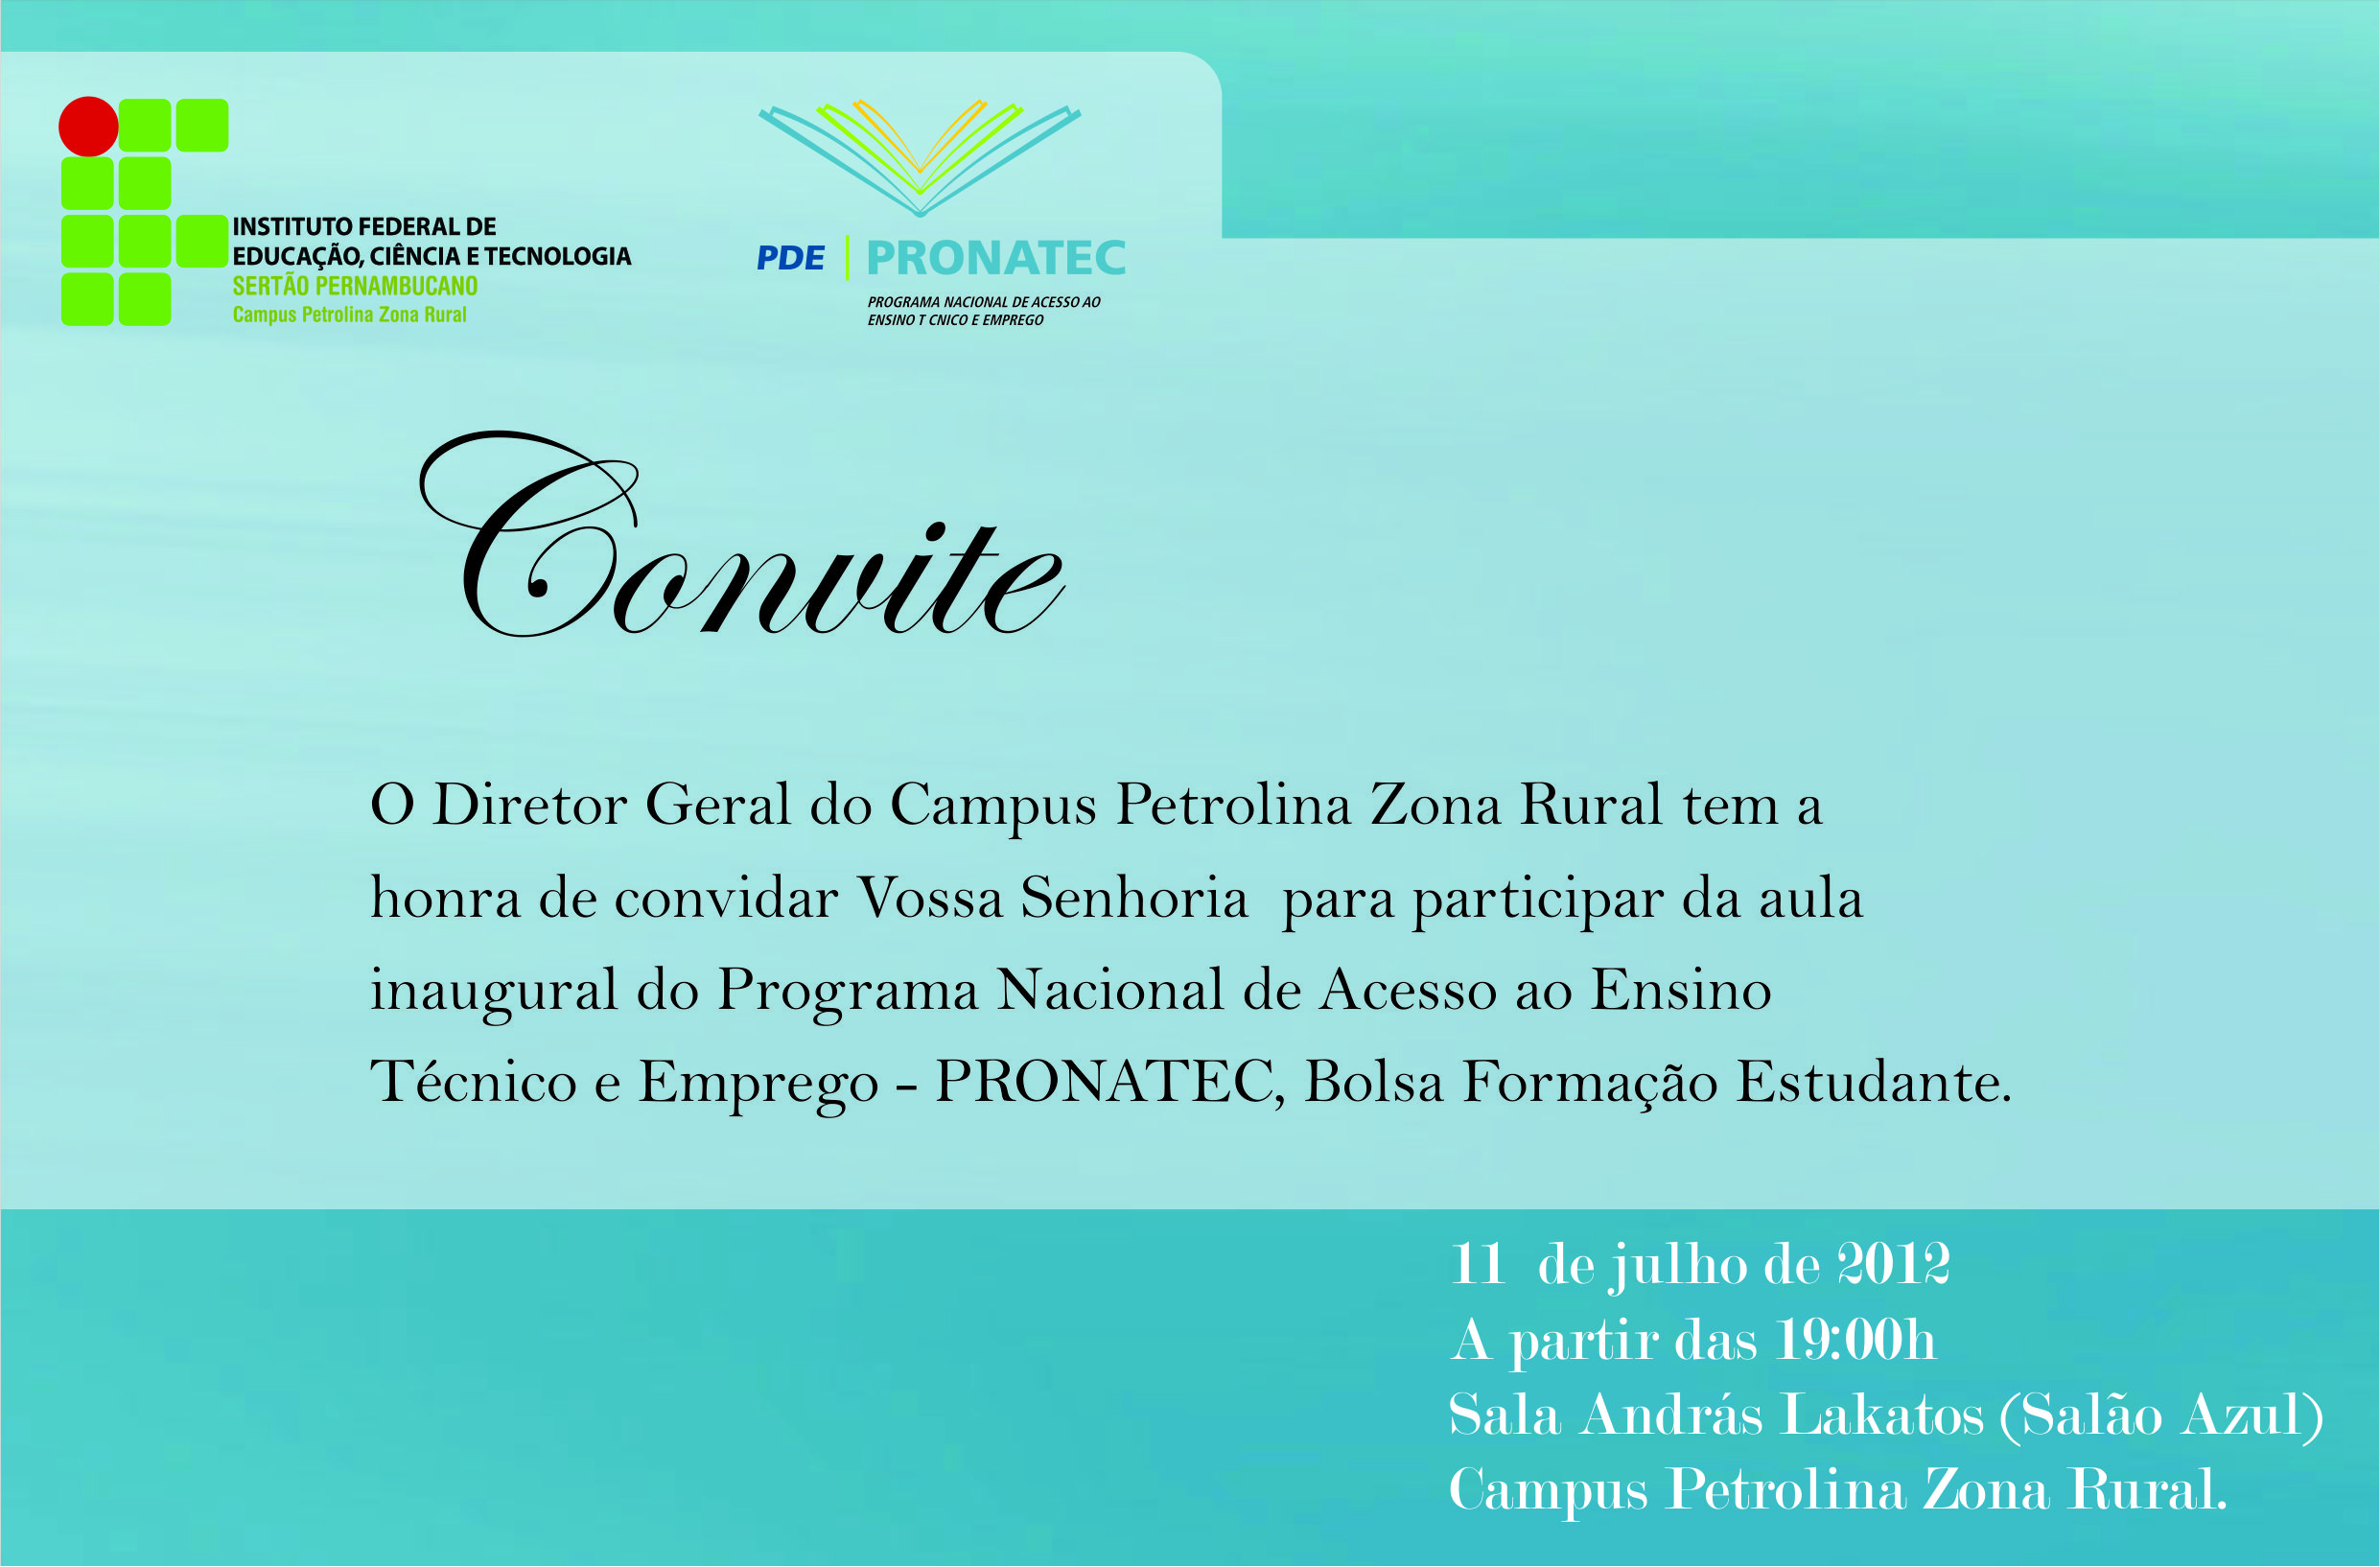 Aulas inaugurais do PRONATEC acontecem no campus Petrolina Zona Rural